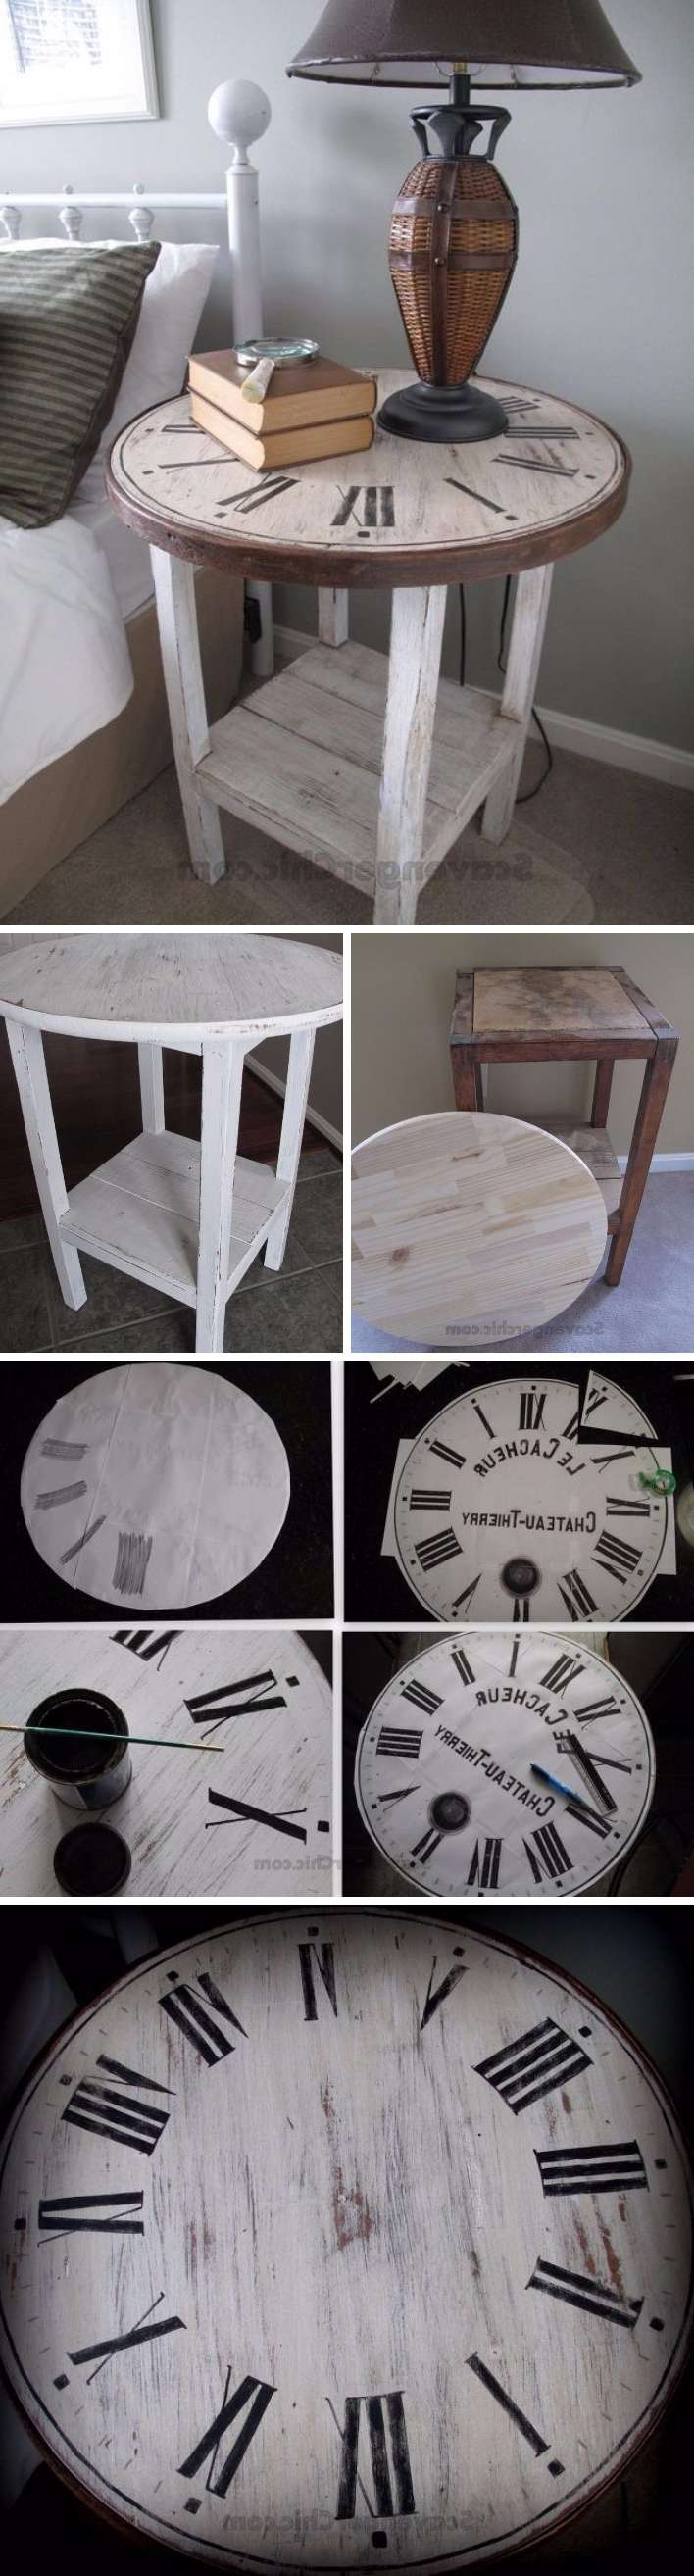 25 Diy Side Table Ideas With Lots Of Tutorials 2017 Throughout Trendy Clock Coffee Tables Round Shaped (View 20 of 20)